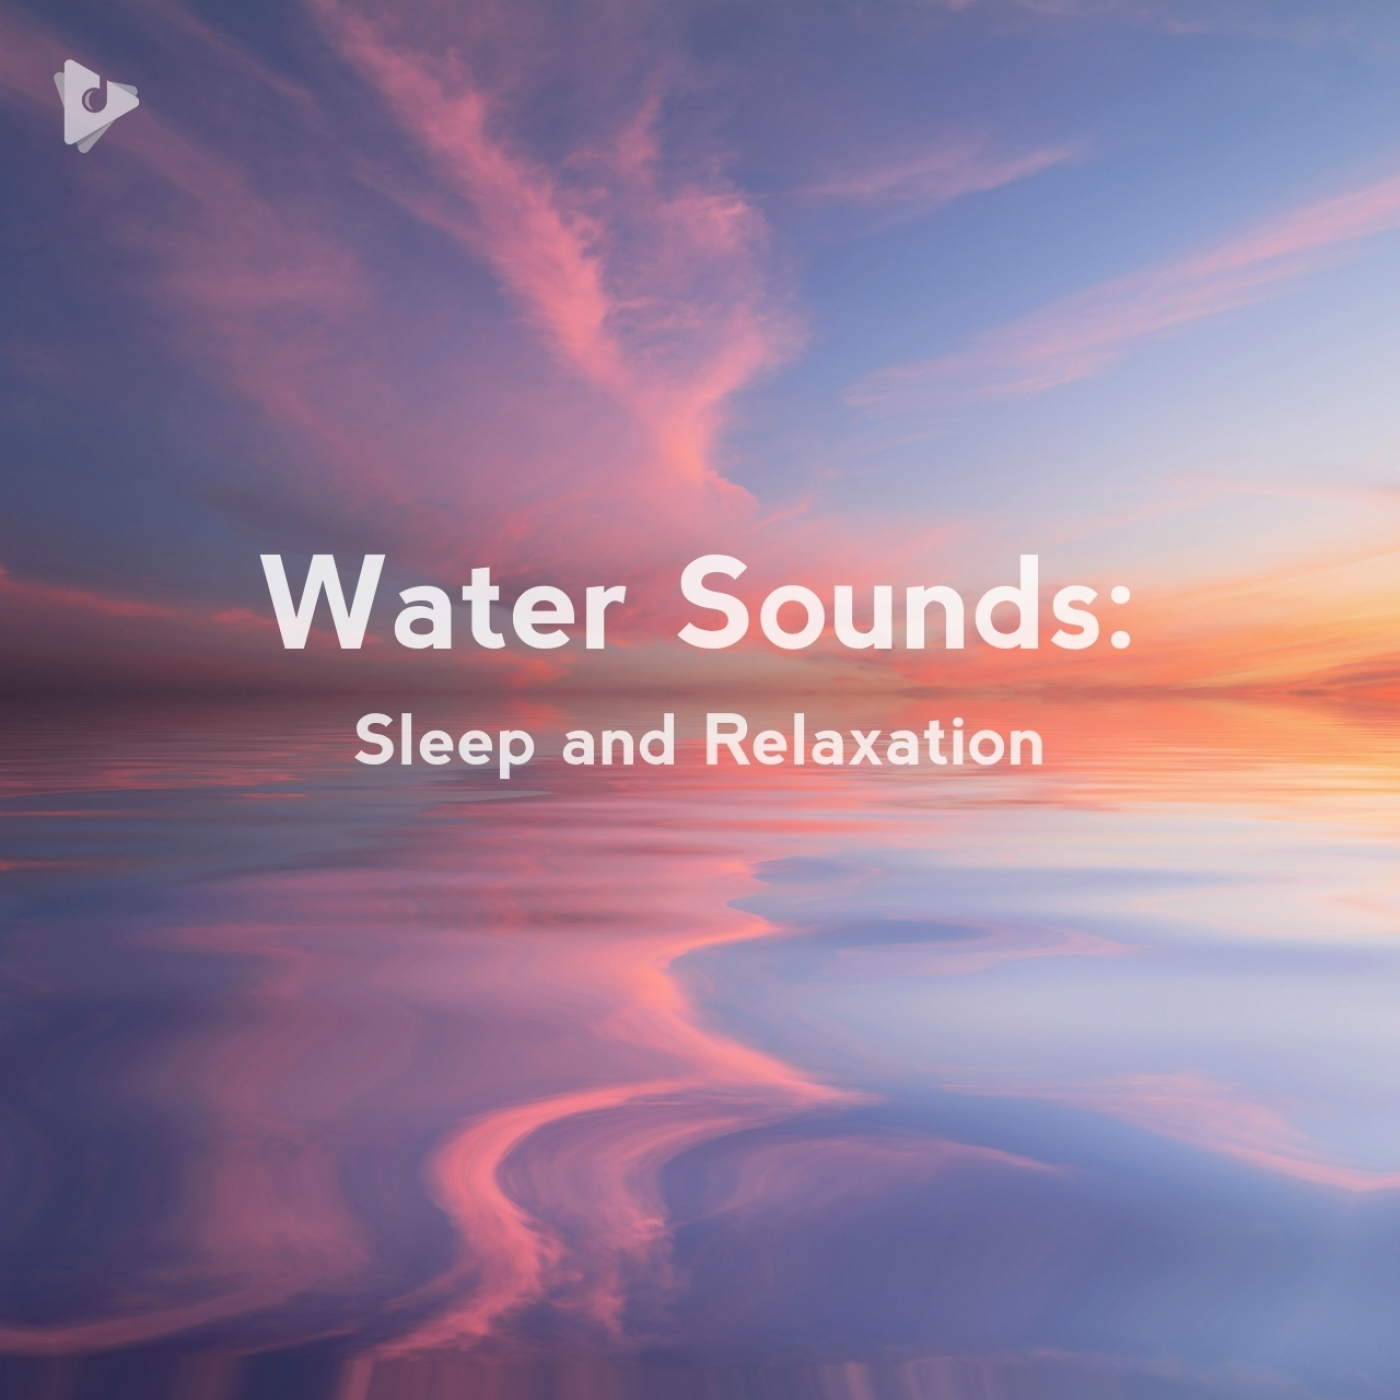 Water Sounds: Sleep and Relaxation